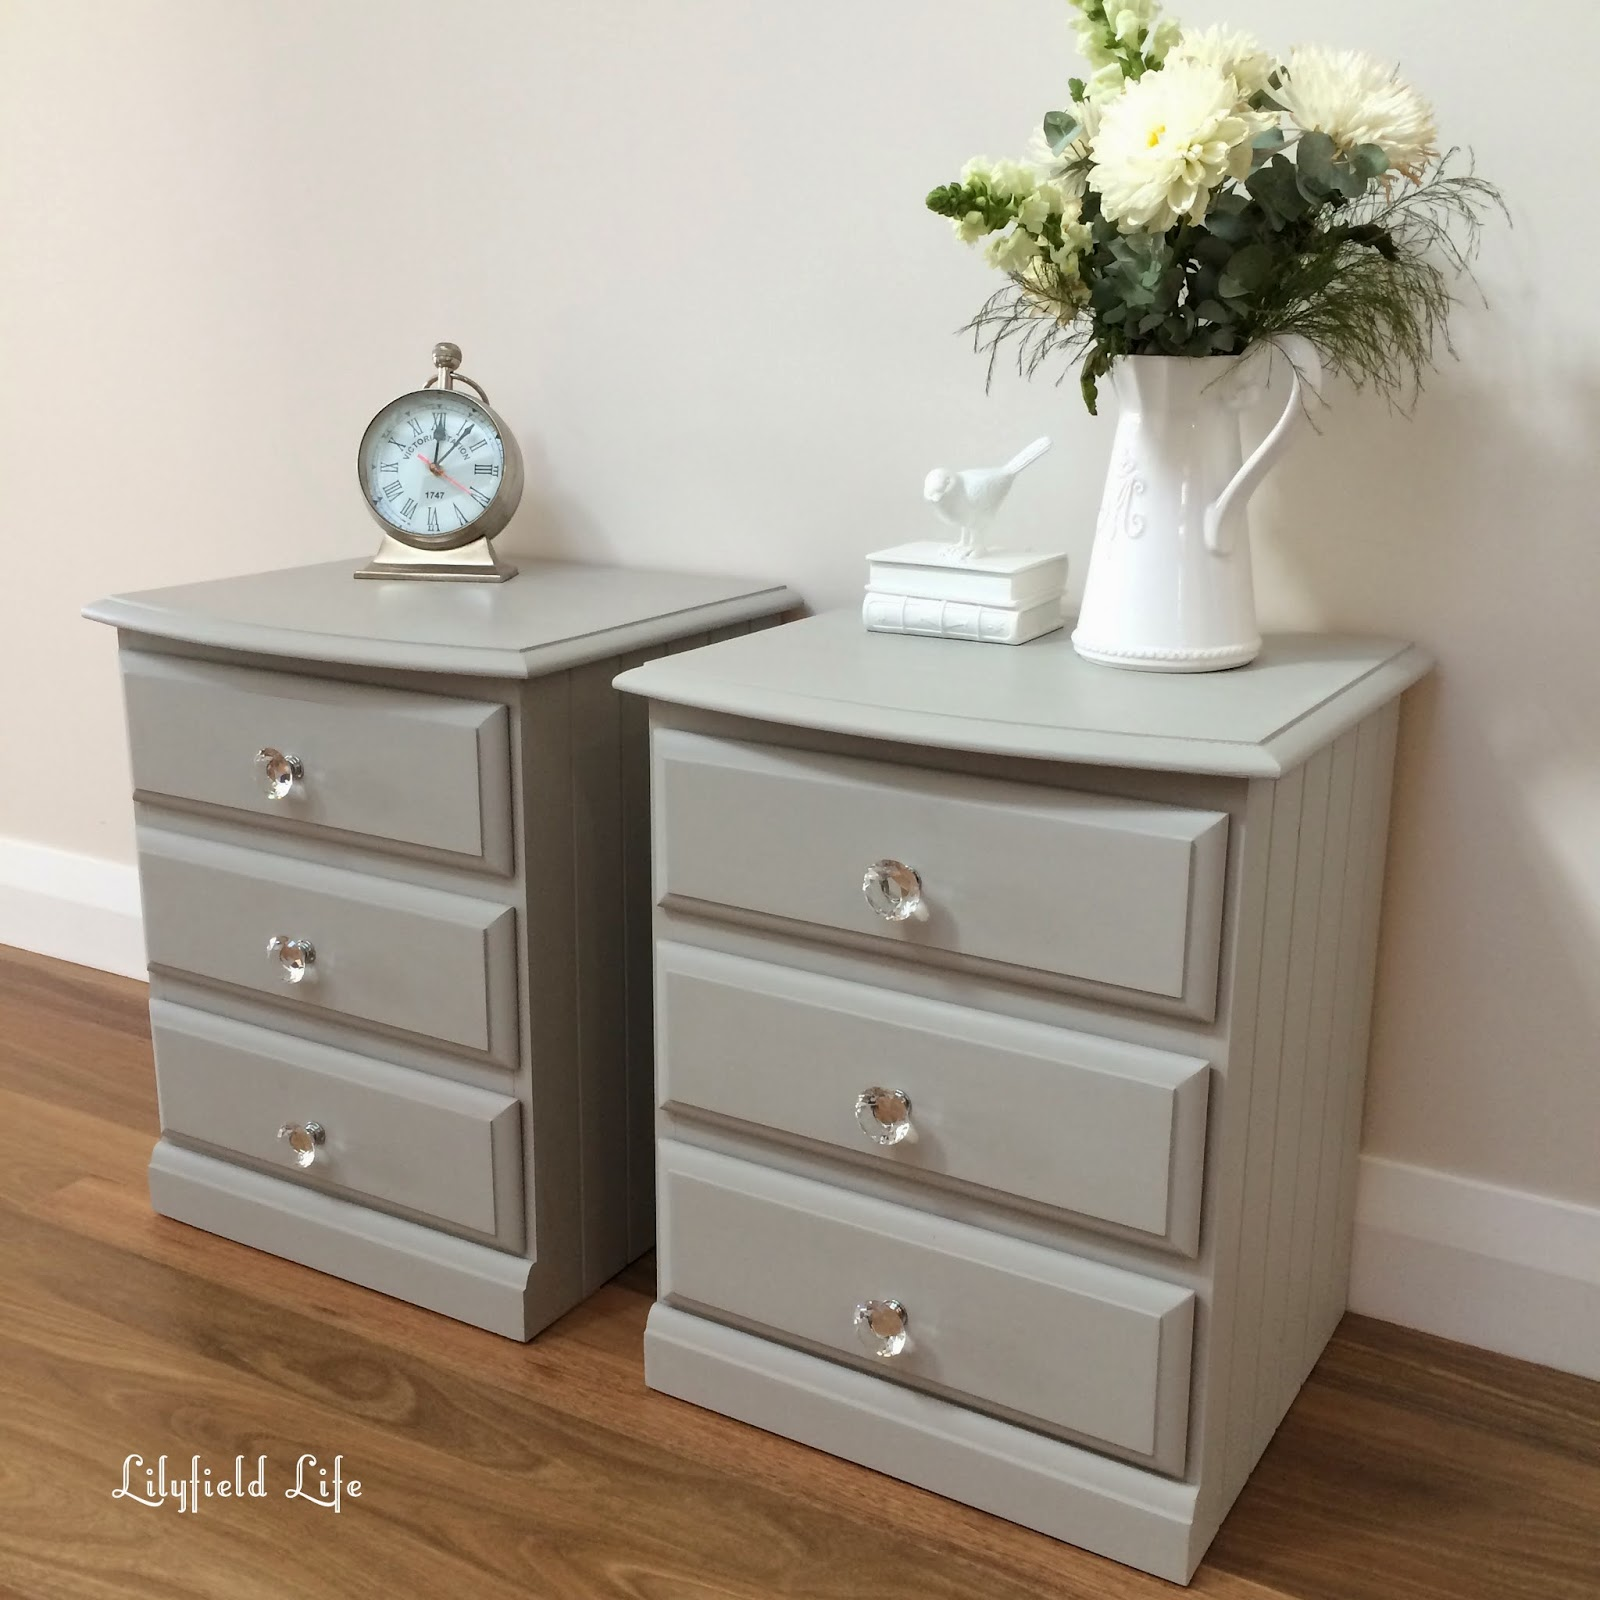 Images Of Painted Pine Furniture